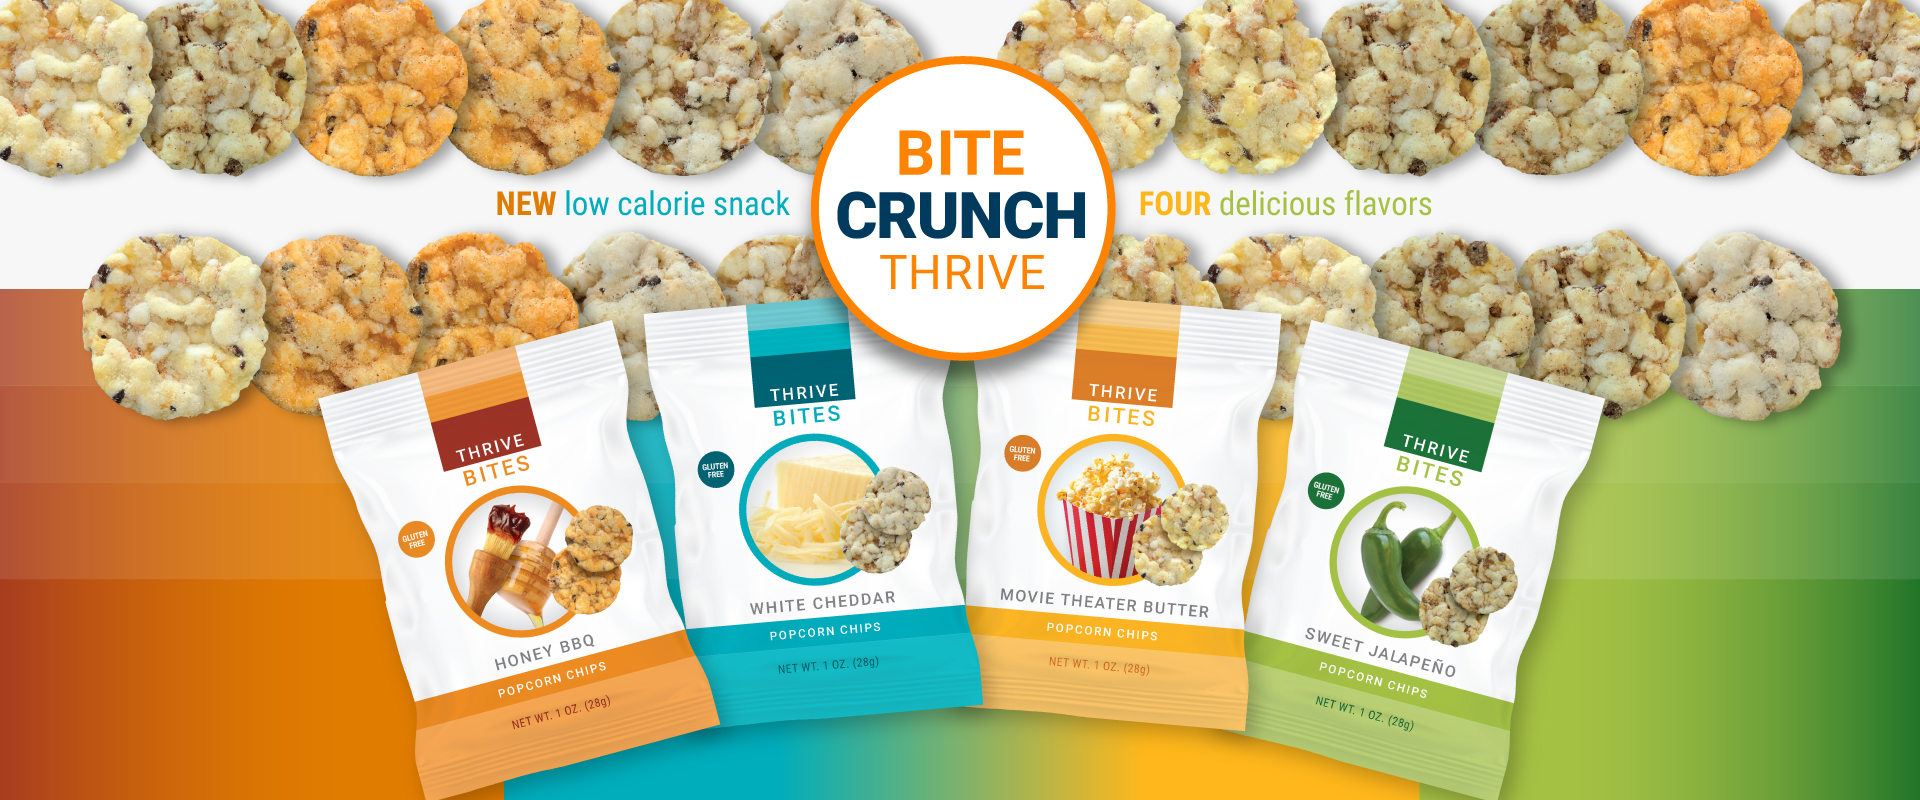 THRIVE BITES Popcorn Chips